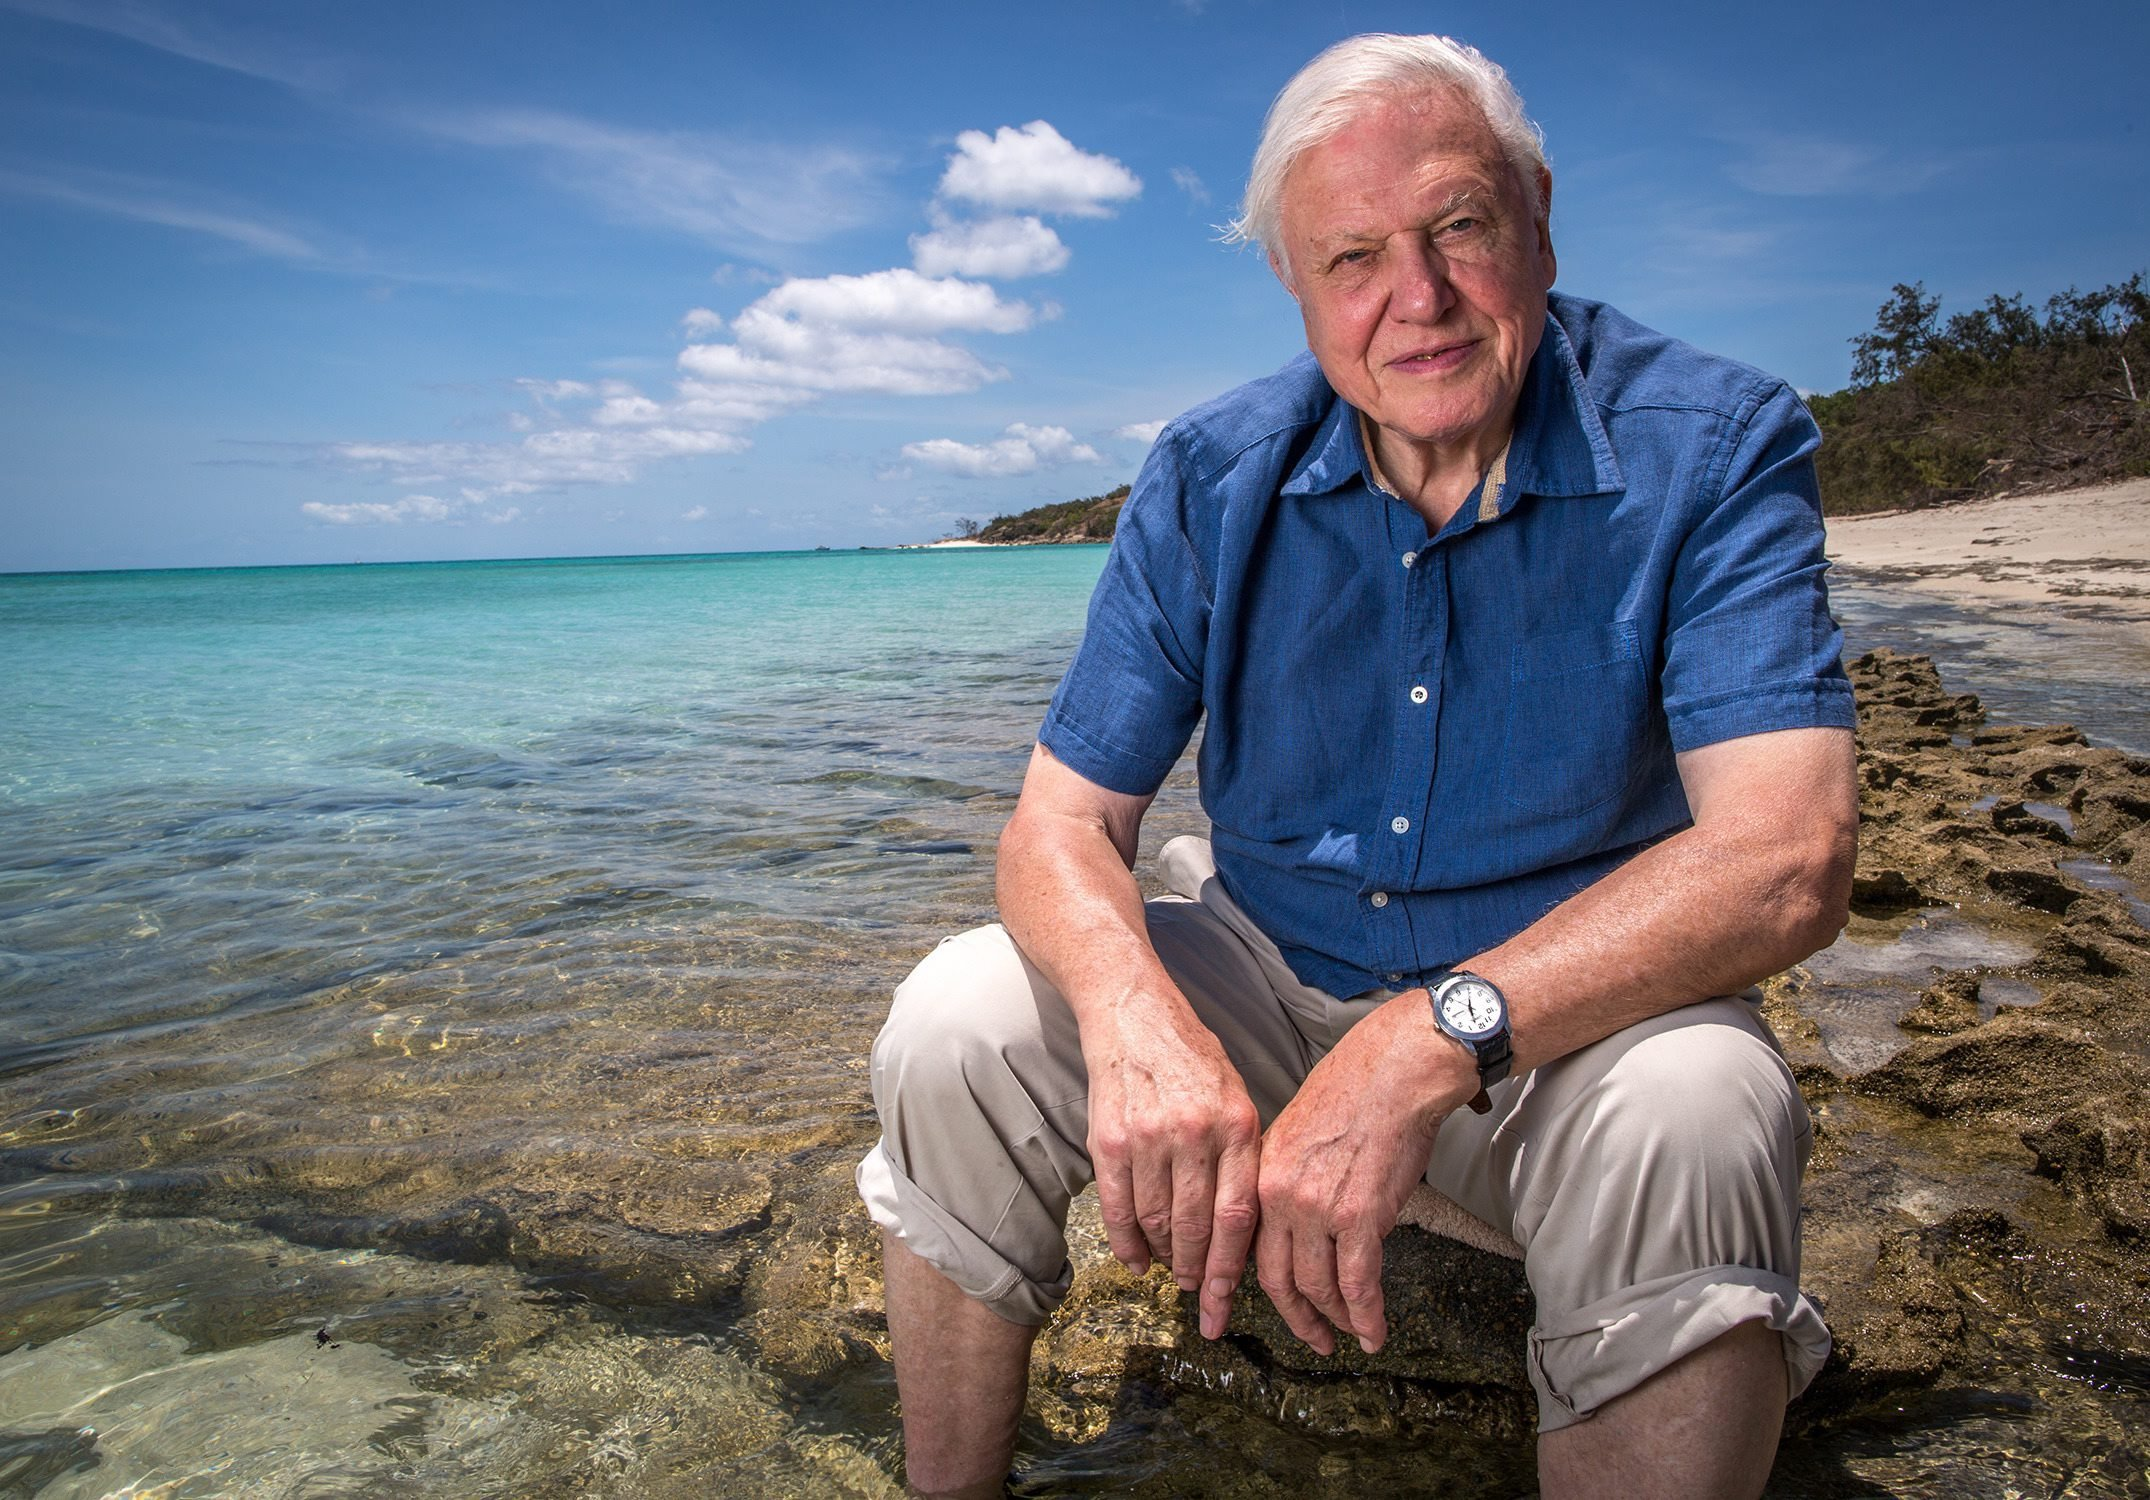 Sir David Attenborough at 90: A timeline of his outstanding career in television